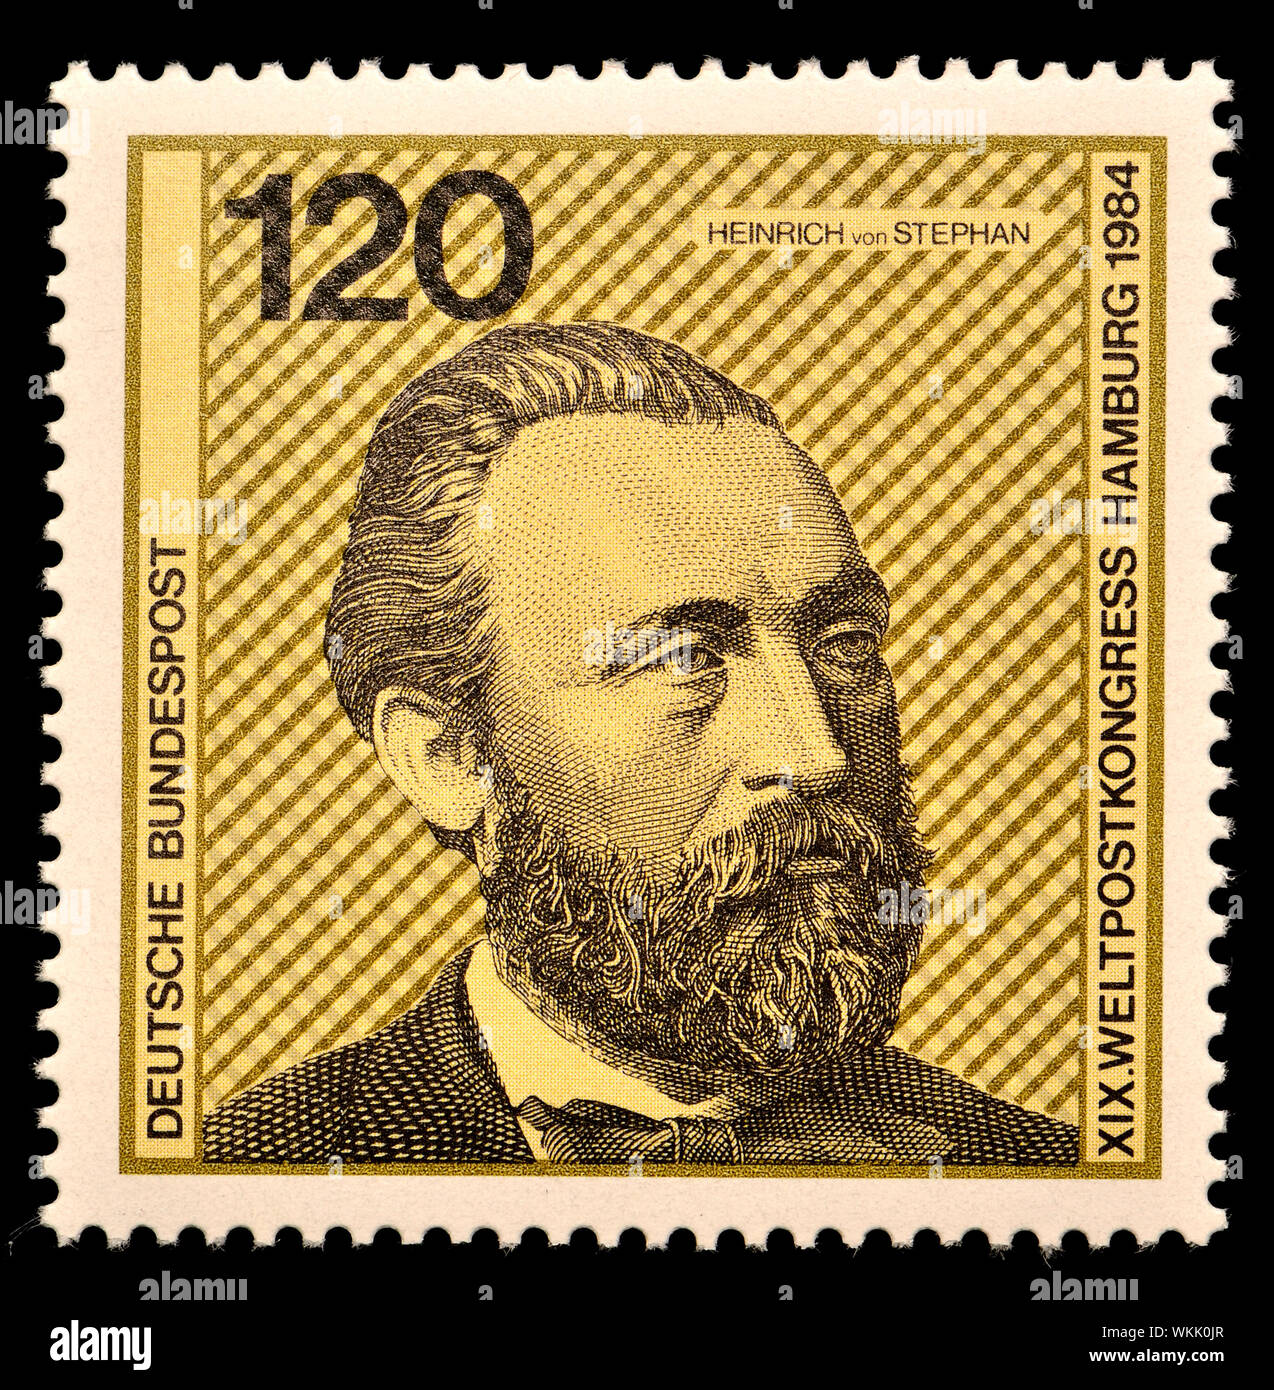 German postage stamp (1984) : Heinrich von Stephan (1831-97) general post director for the German Empire who reorganized the German postal service Stock Photo